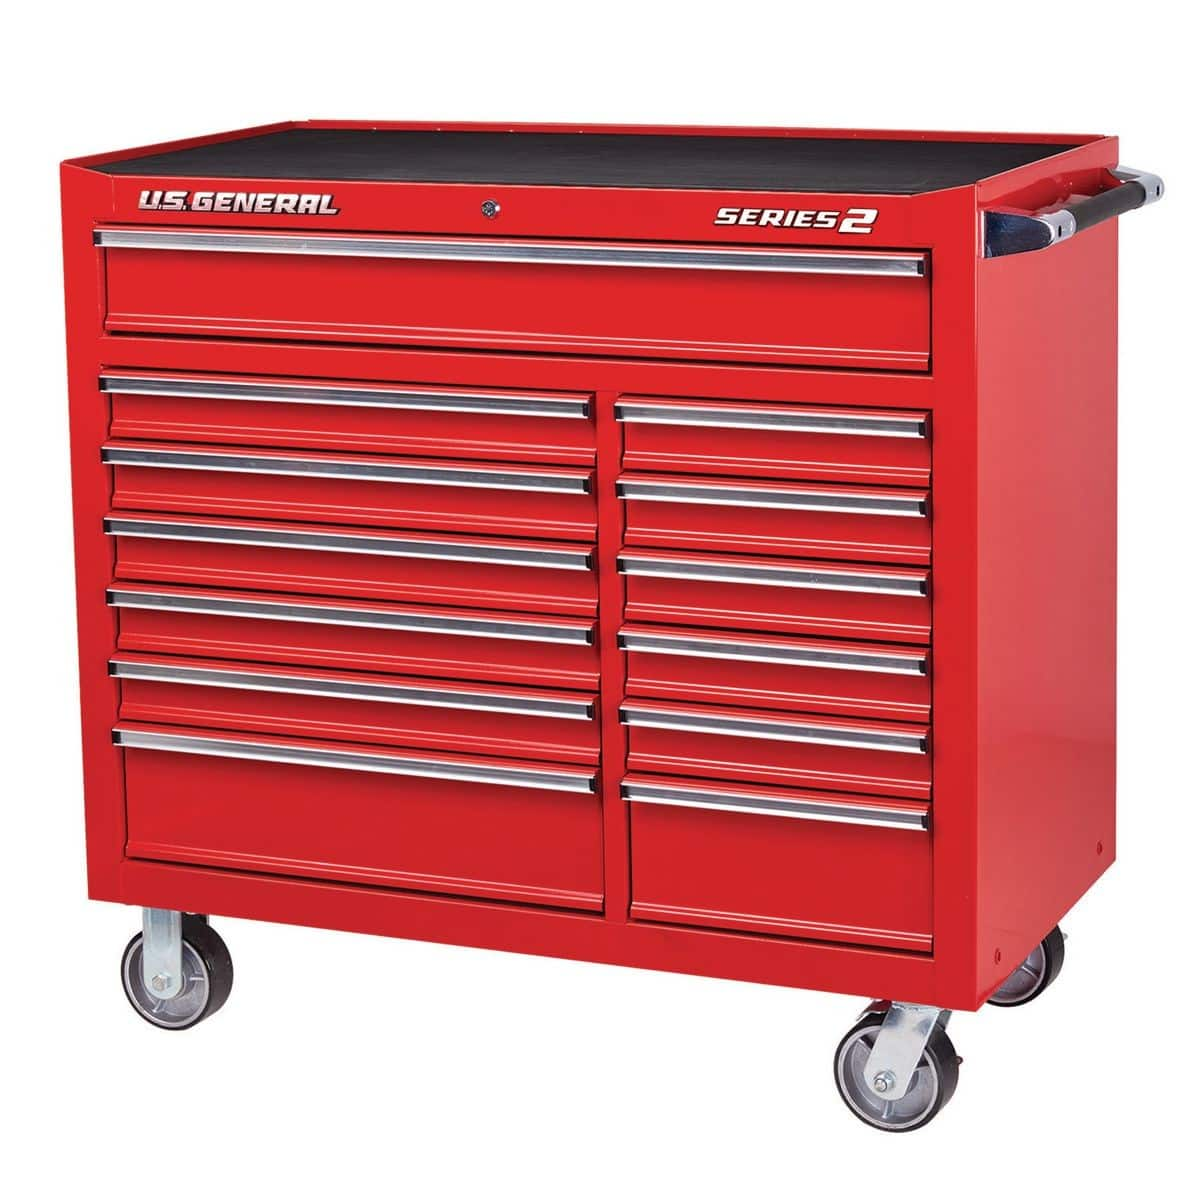 HArbor Freight 44 in. x 22 In. Double Bank  Roller Cabinet $399.99